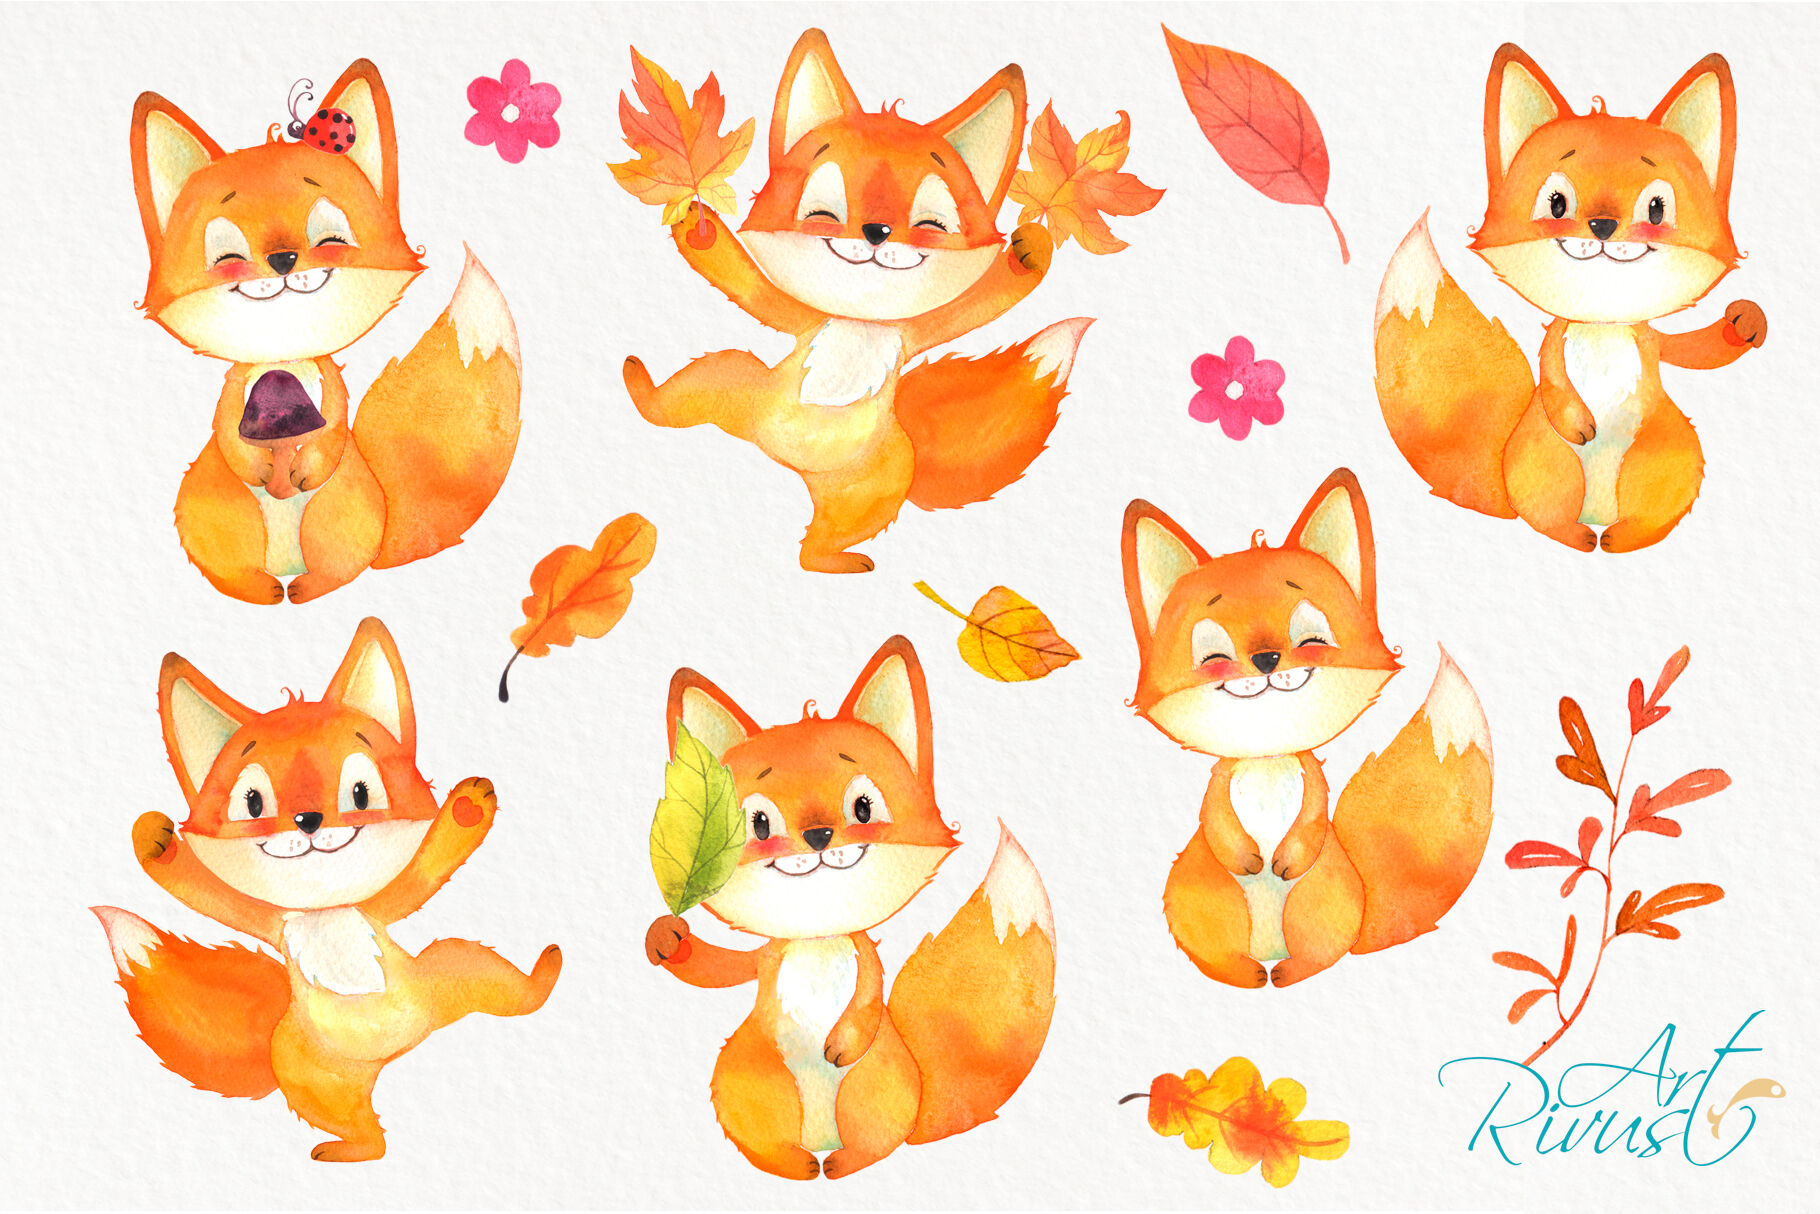 Watercolor Fall woodland Fox clipart pack By Rivus Art.